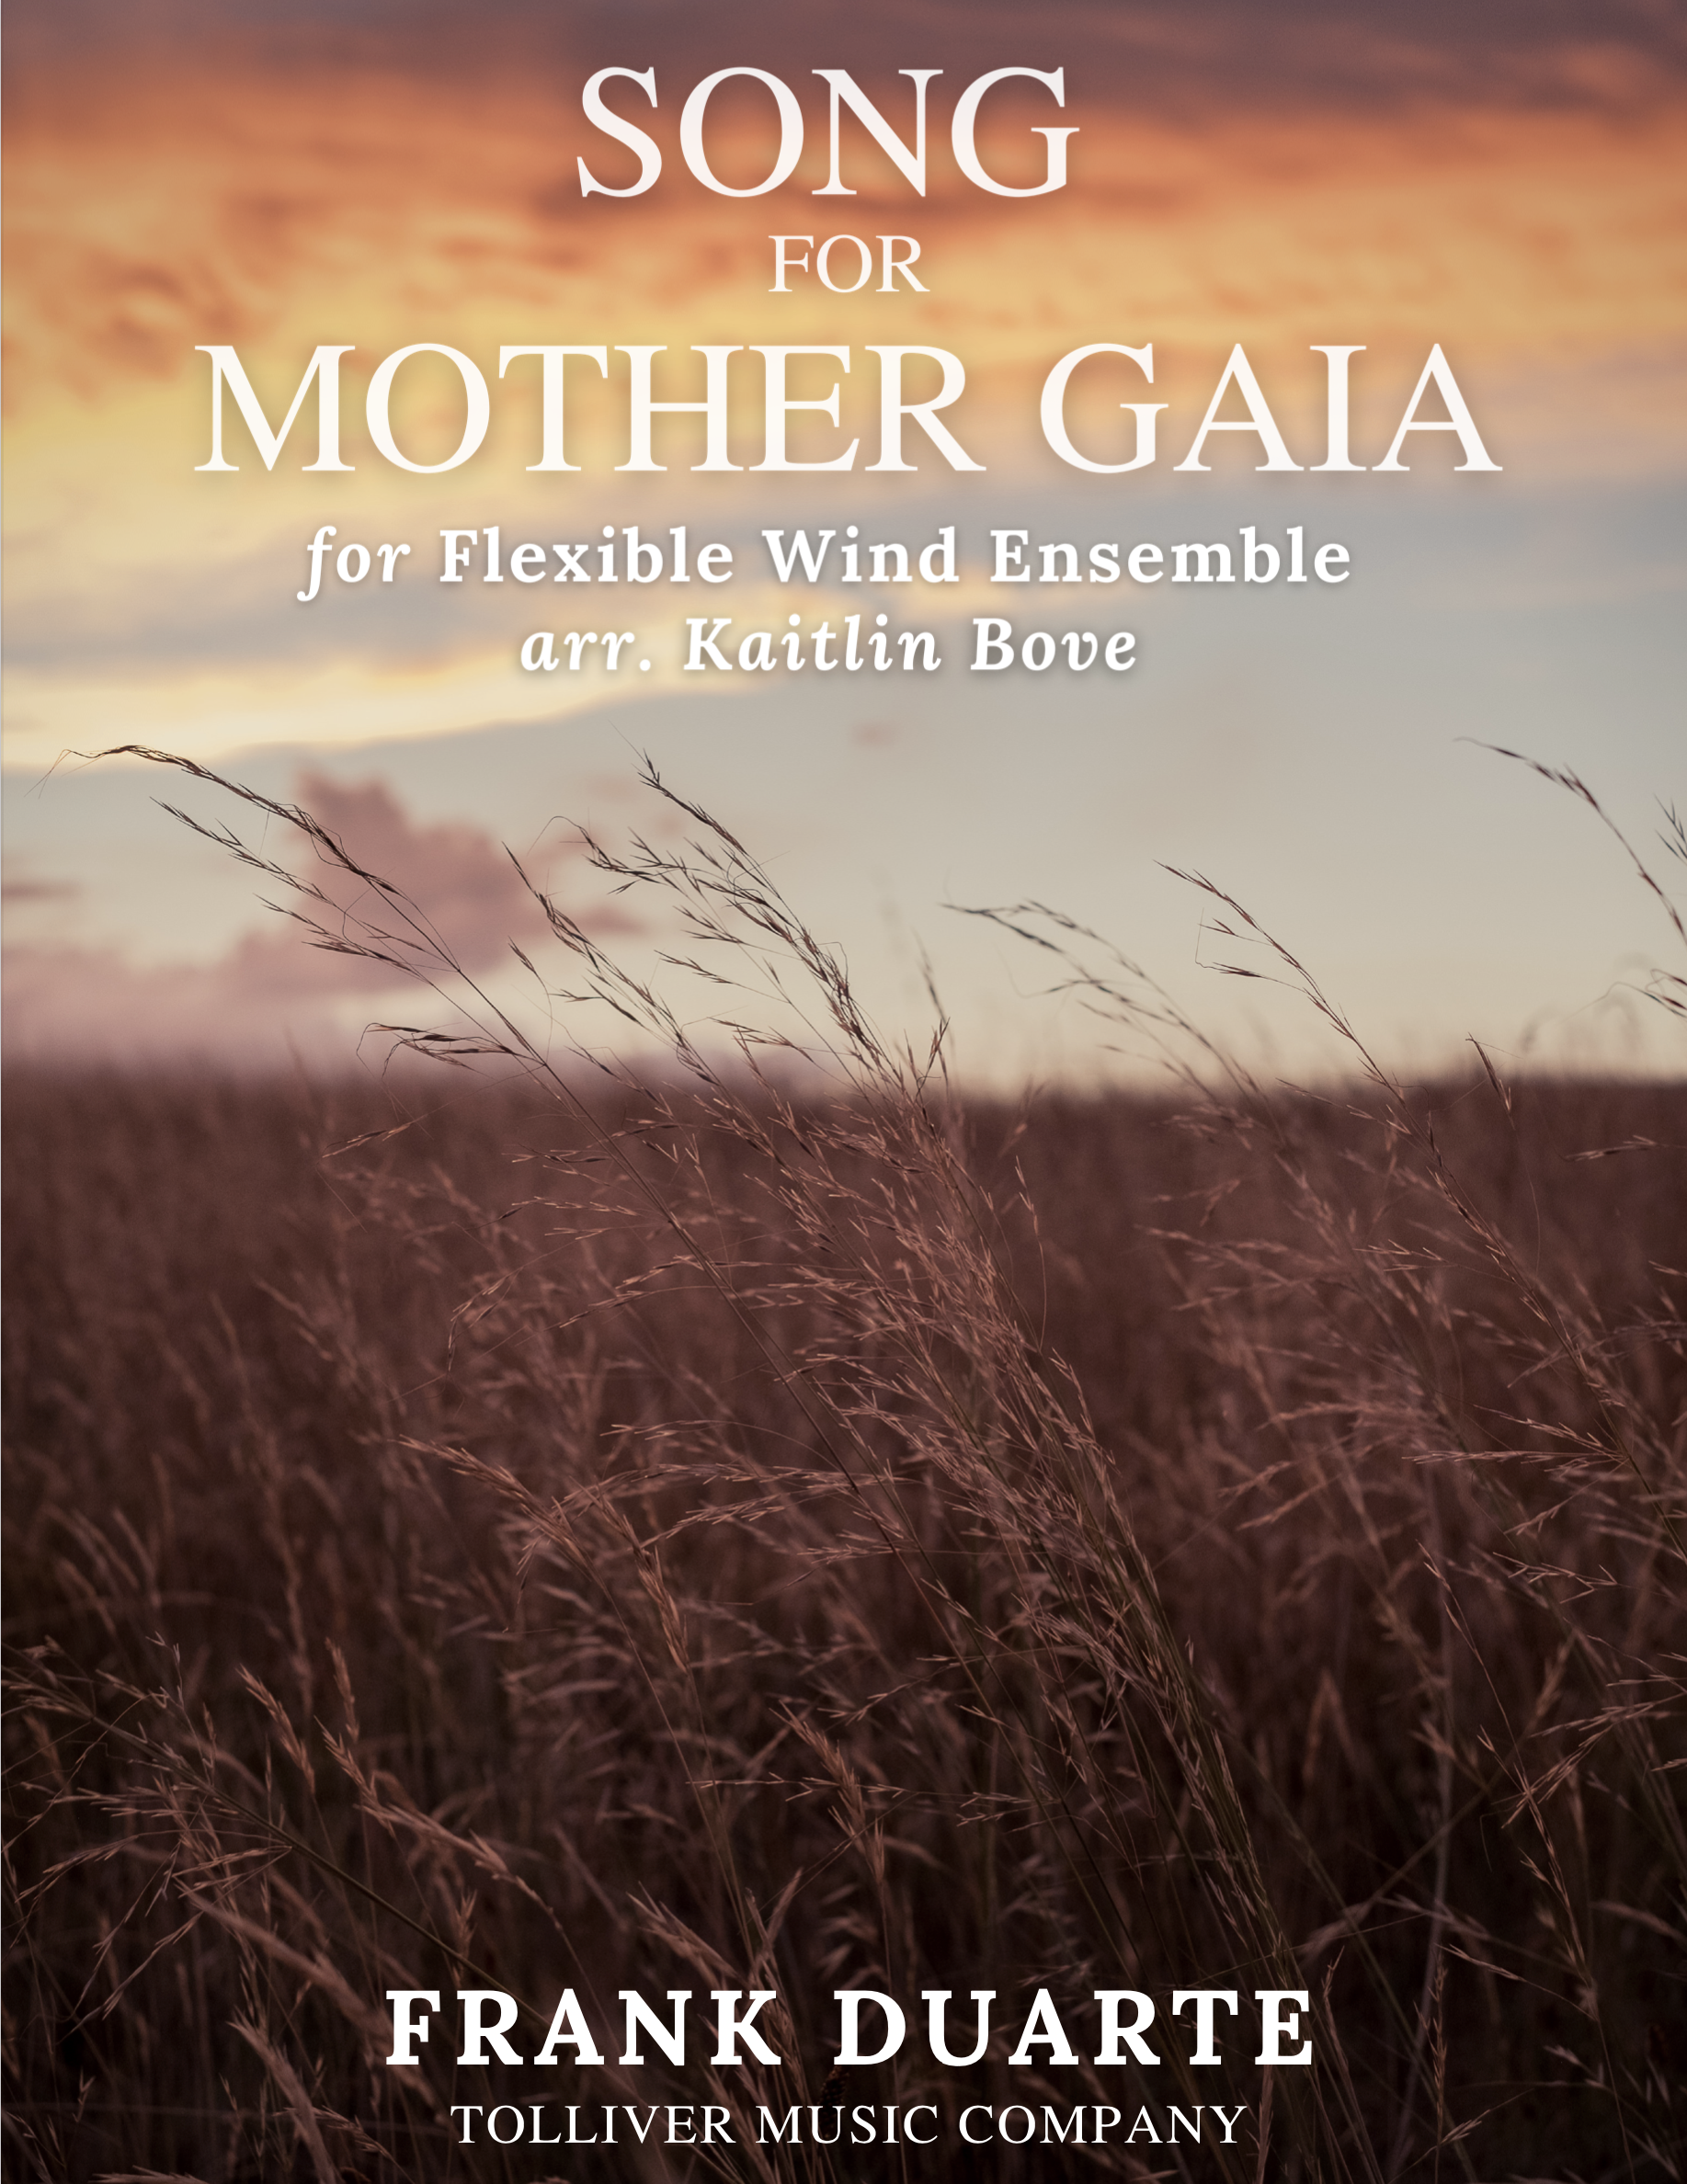 Song For Mother Gaia by Frank Duarte arr. Bove